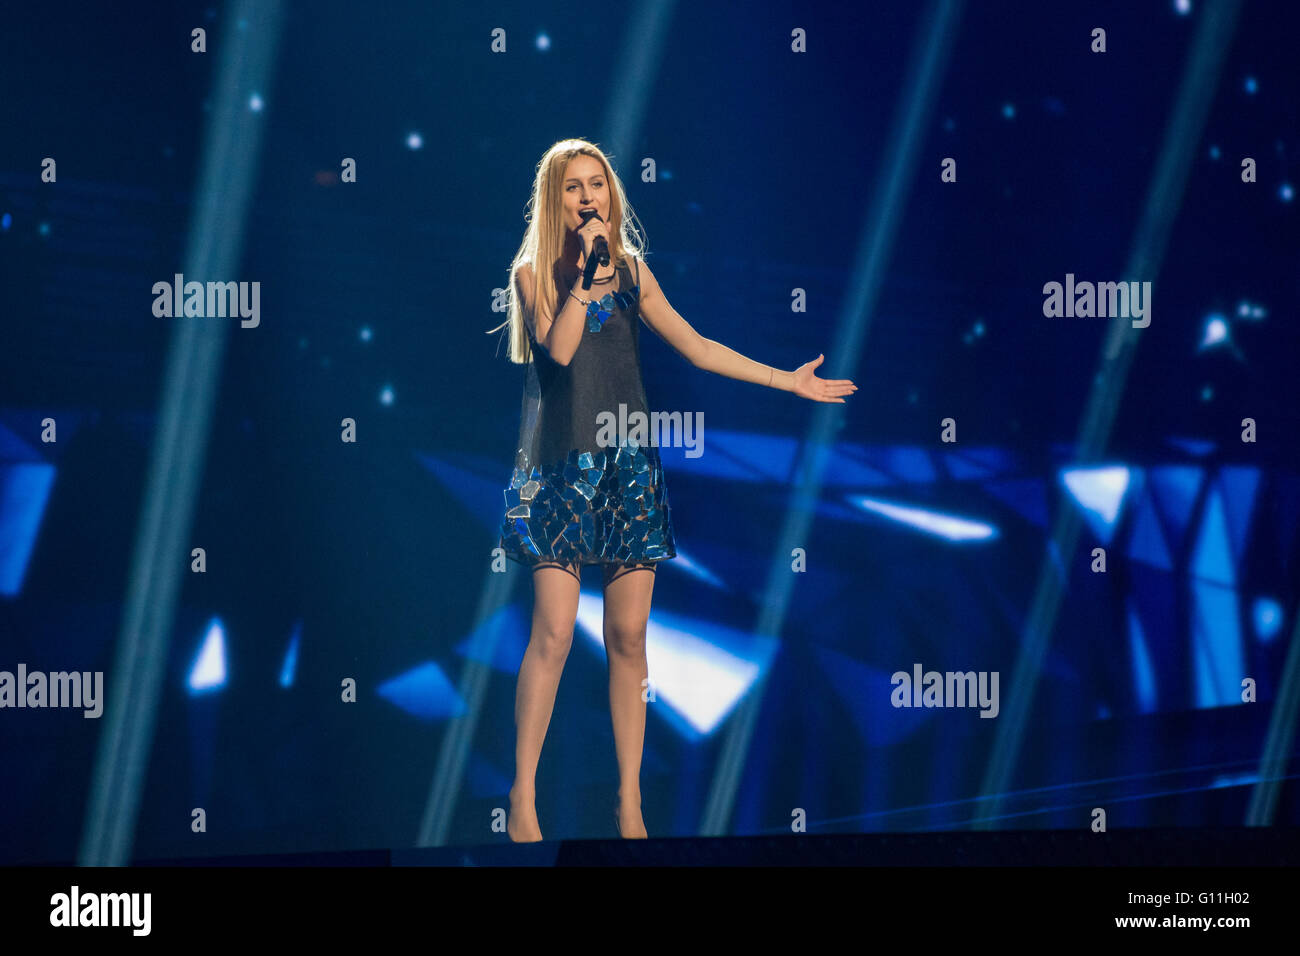 Stockholm, Sweden. 6th May 2016. Singer Lidia Isac from Moldova is rehearsing her song 'Falling Stars' for the first Stock Photo